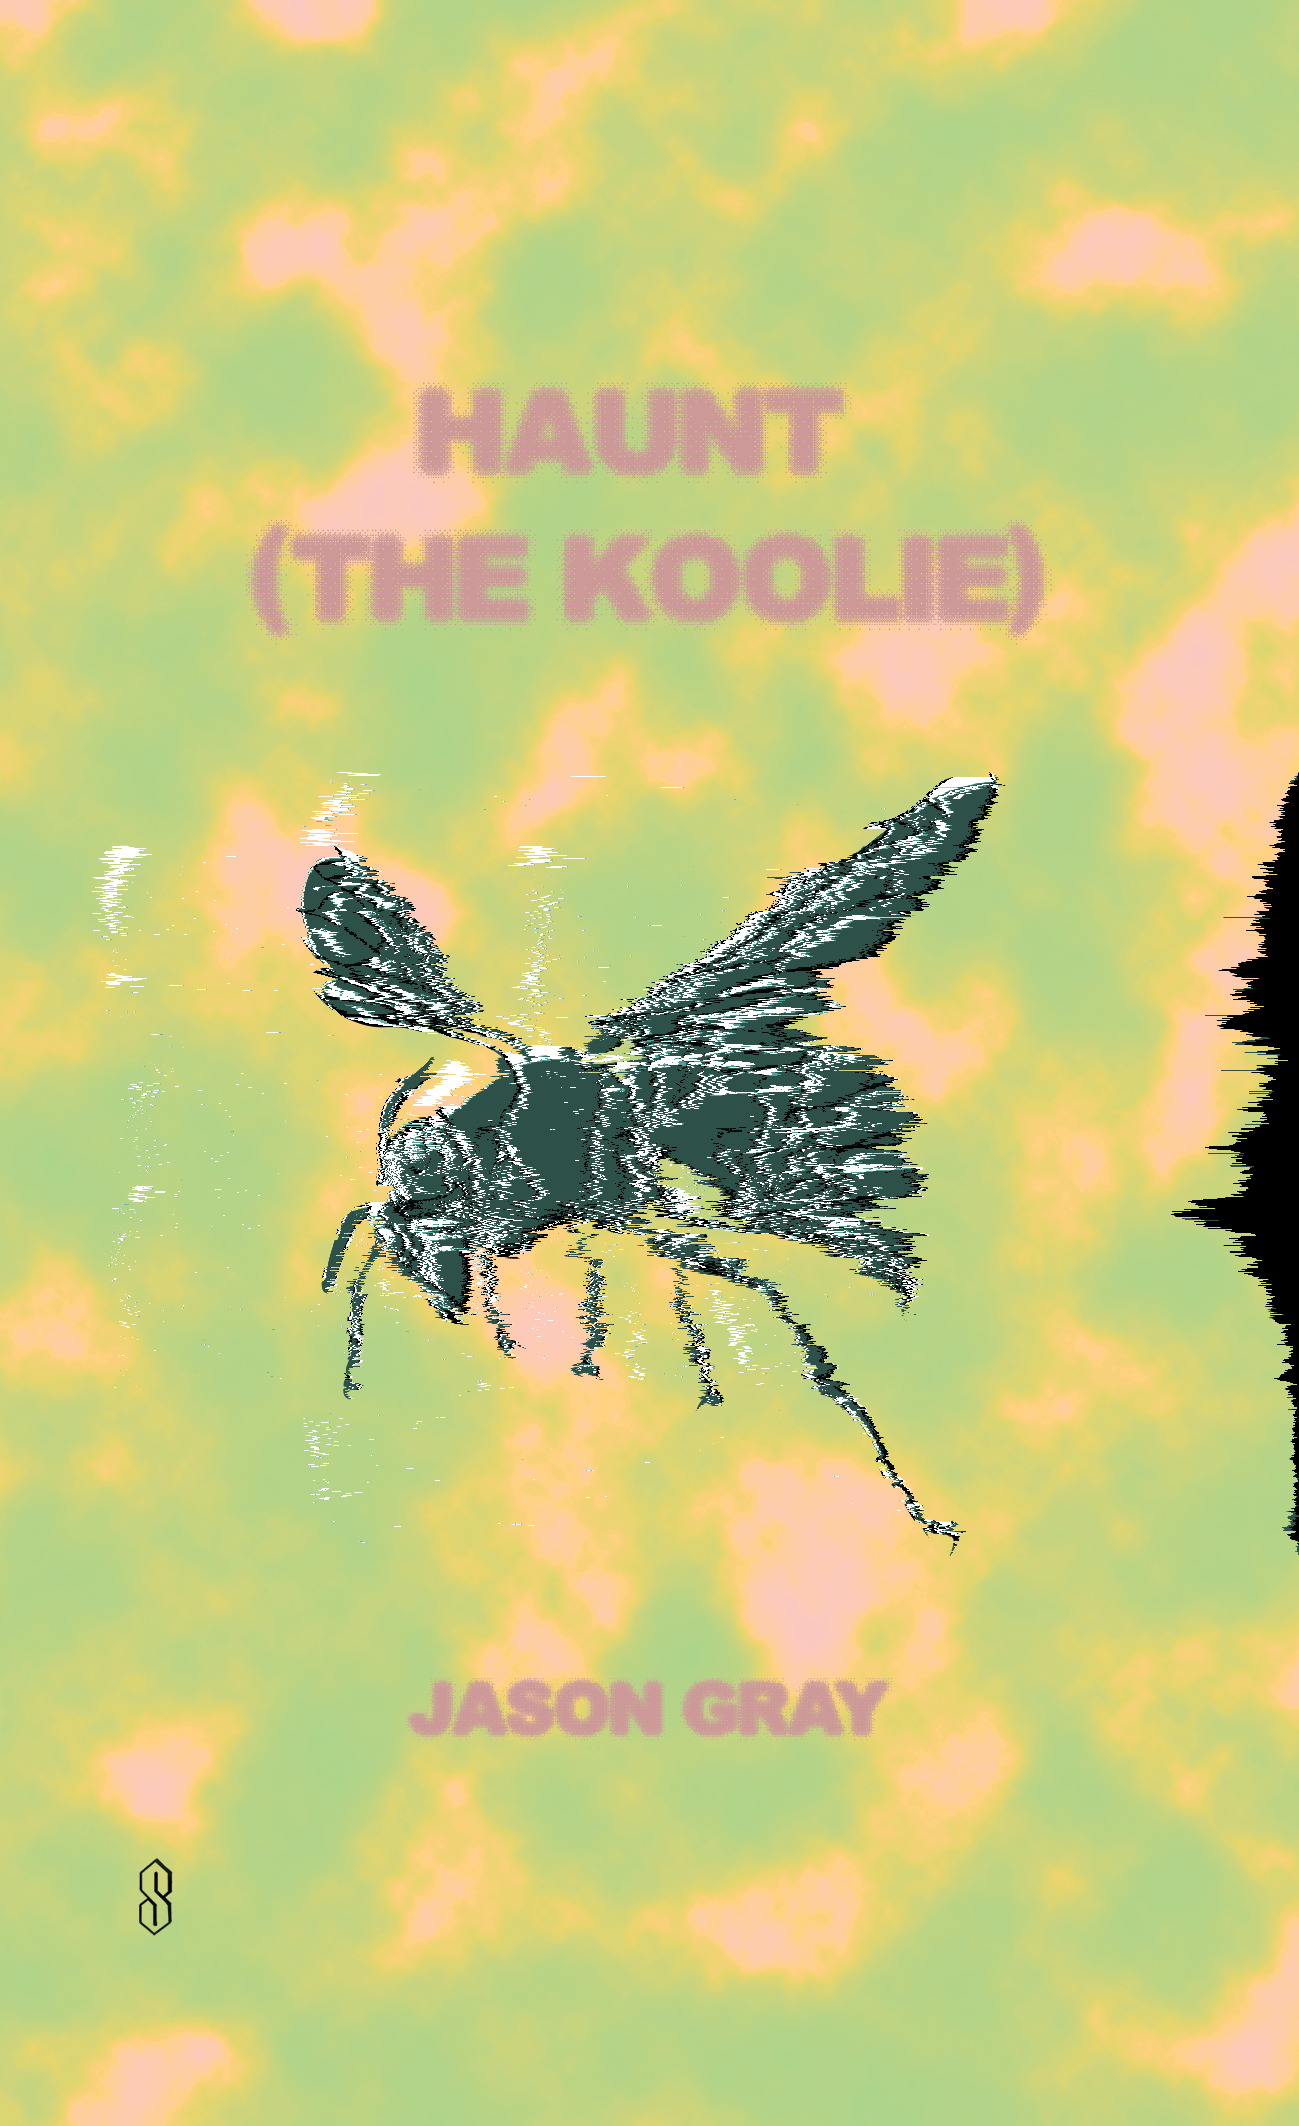 HAUNT THE KOOLIE_JASON GRAY_.png